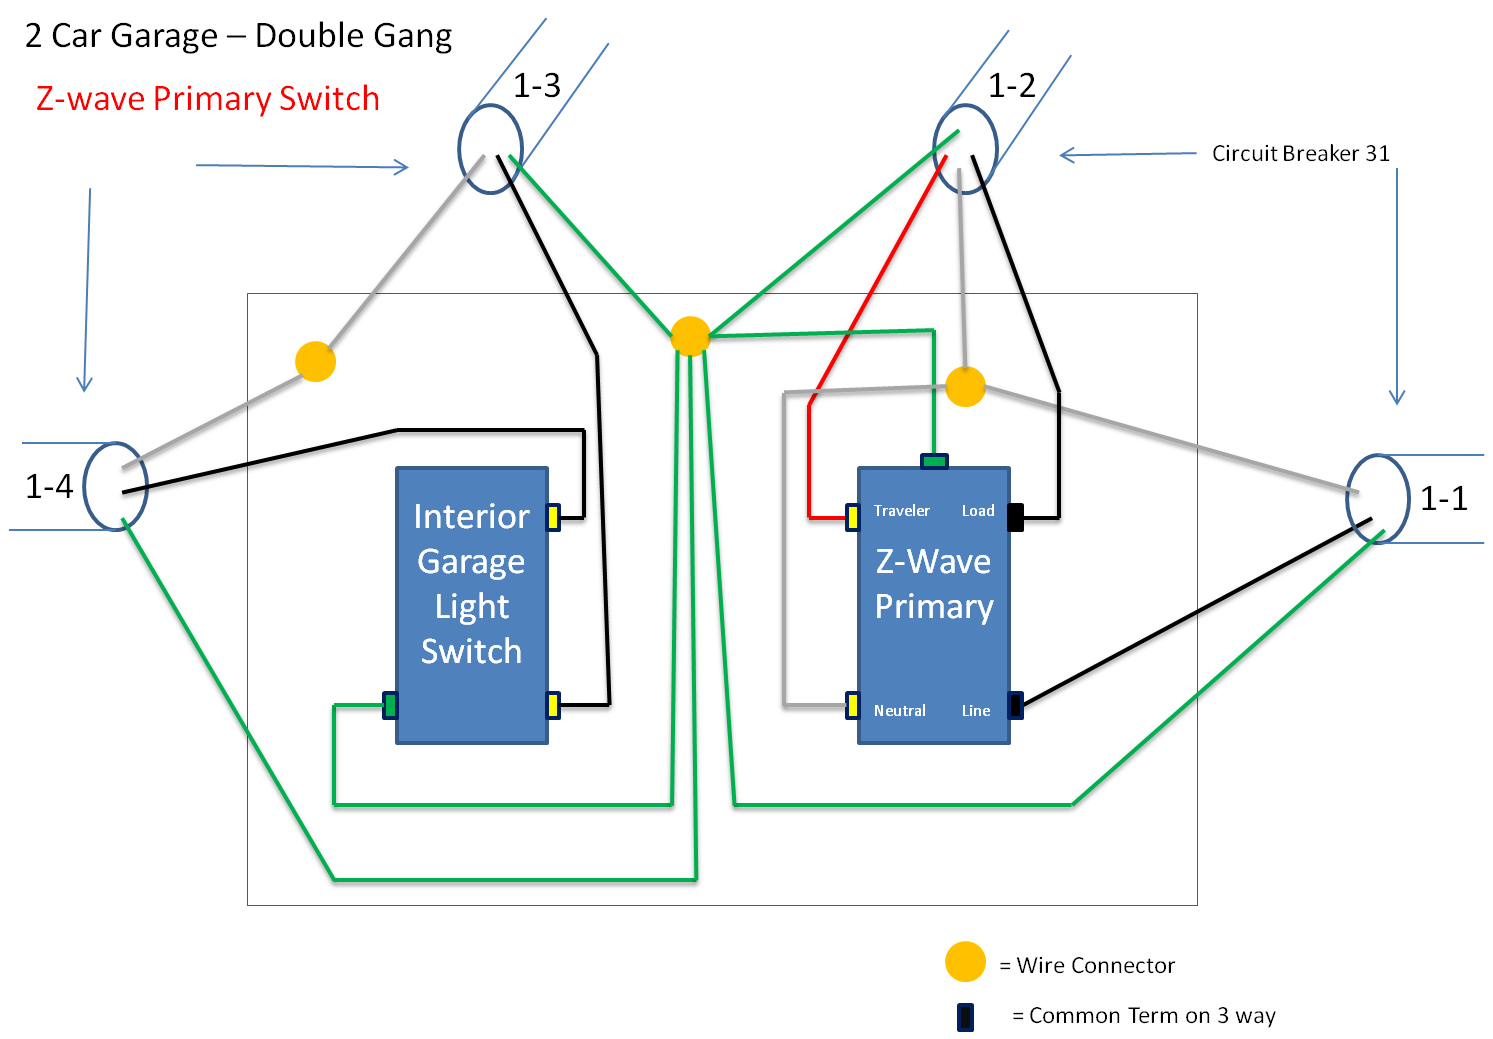 Kitchen Grid Switch Wiring Diagram 34 Images Ceiling Fan Remote Electrical 2011 12 31 213555 2 Car Z Wave Primary Trying To Wire In A Ge 45614 3 Way Light